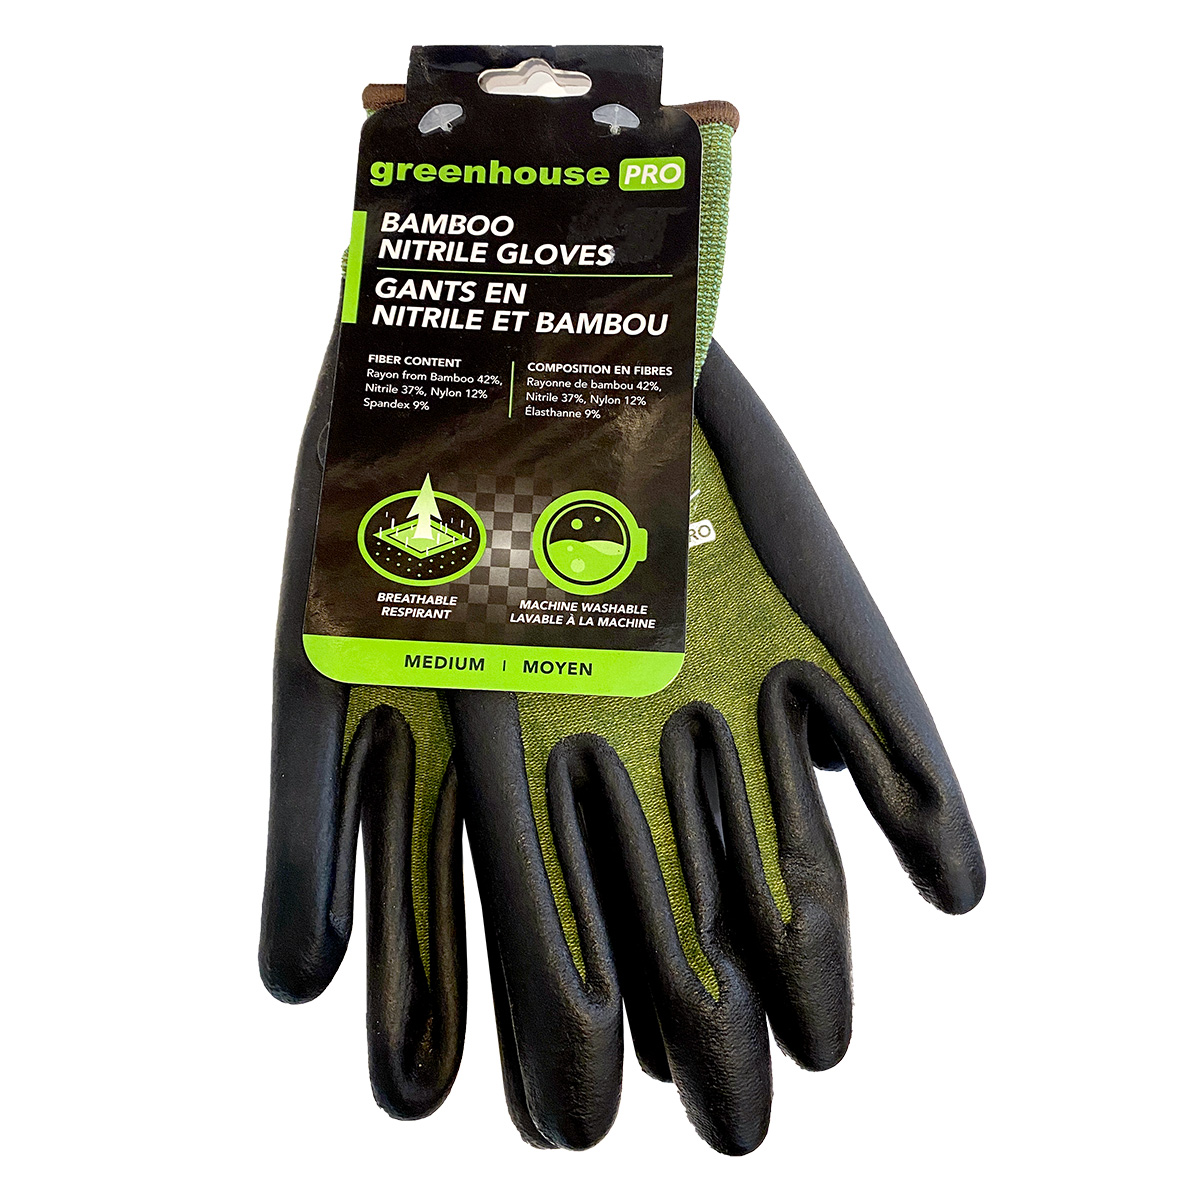 GREENHOUSE PRO Bamboo Nitrile Gloves MEDIUM